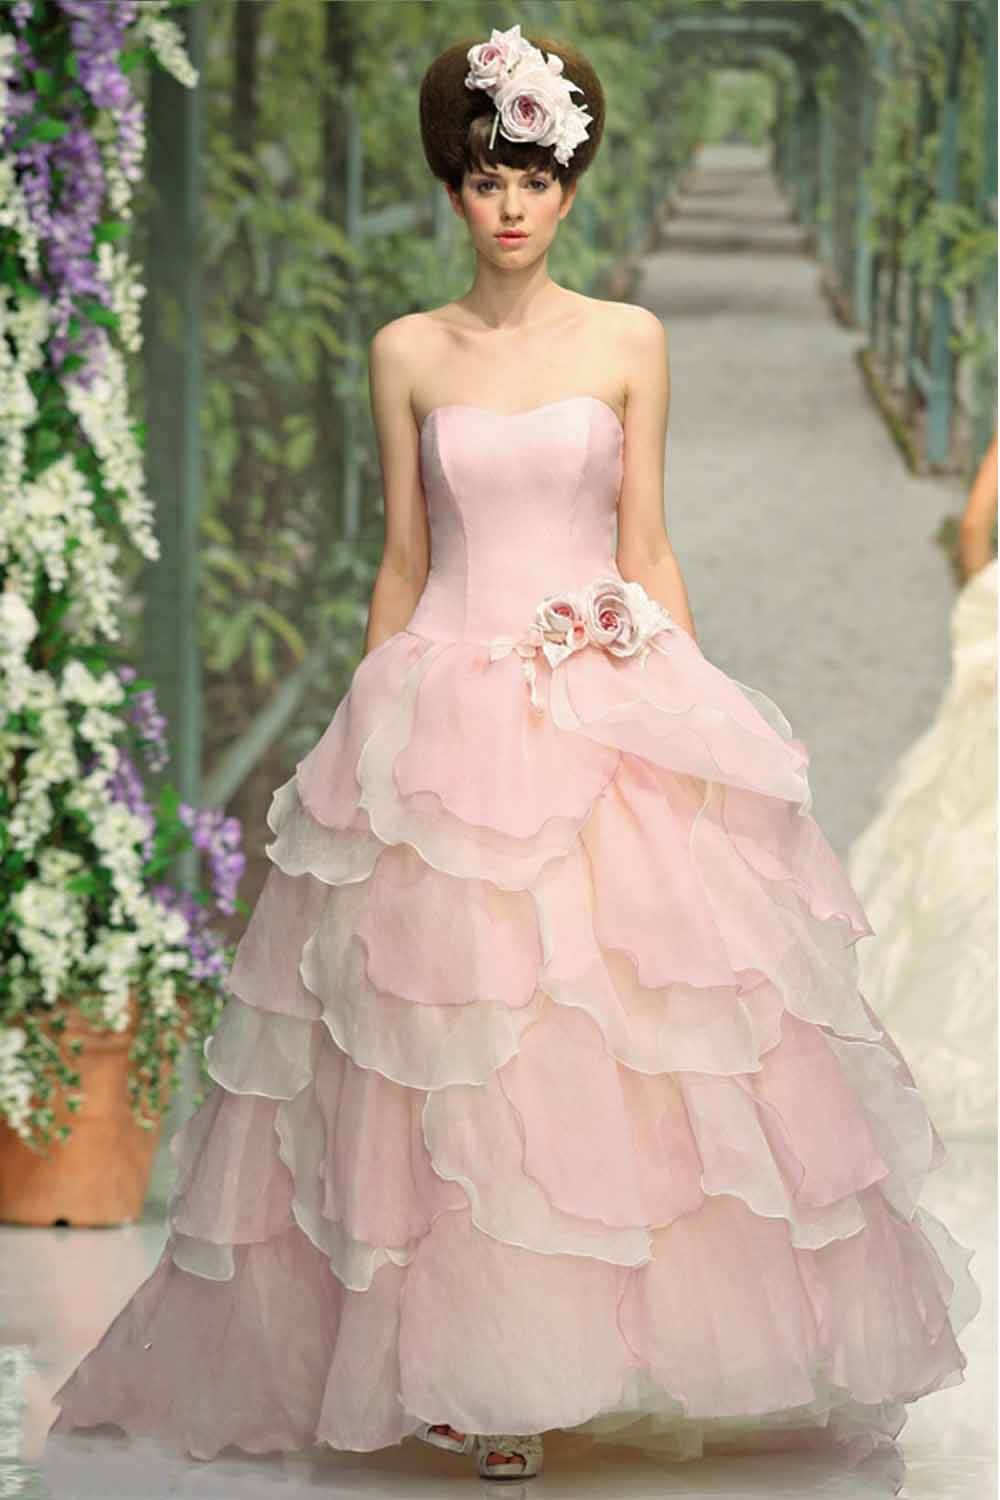 Images Of Pink Wedding Dresses : Pink wedding dresses